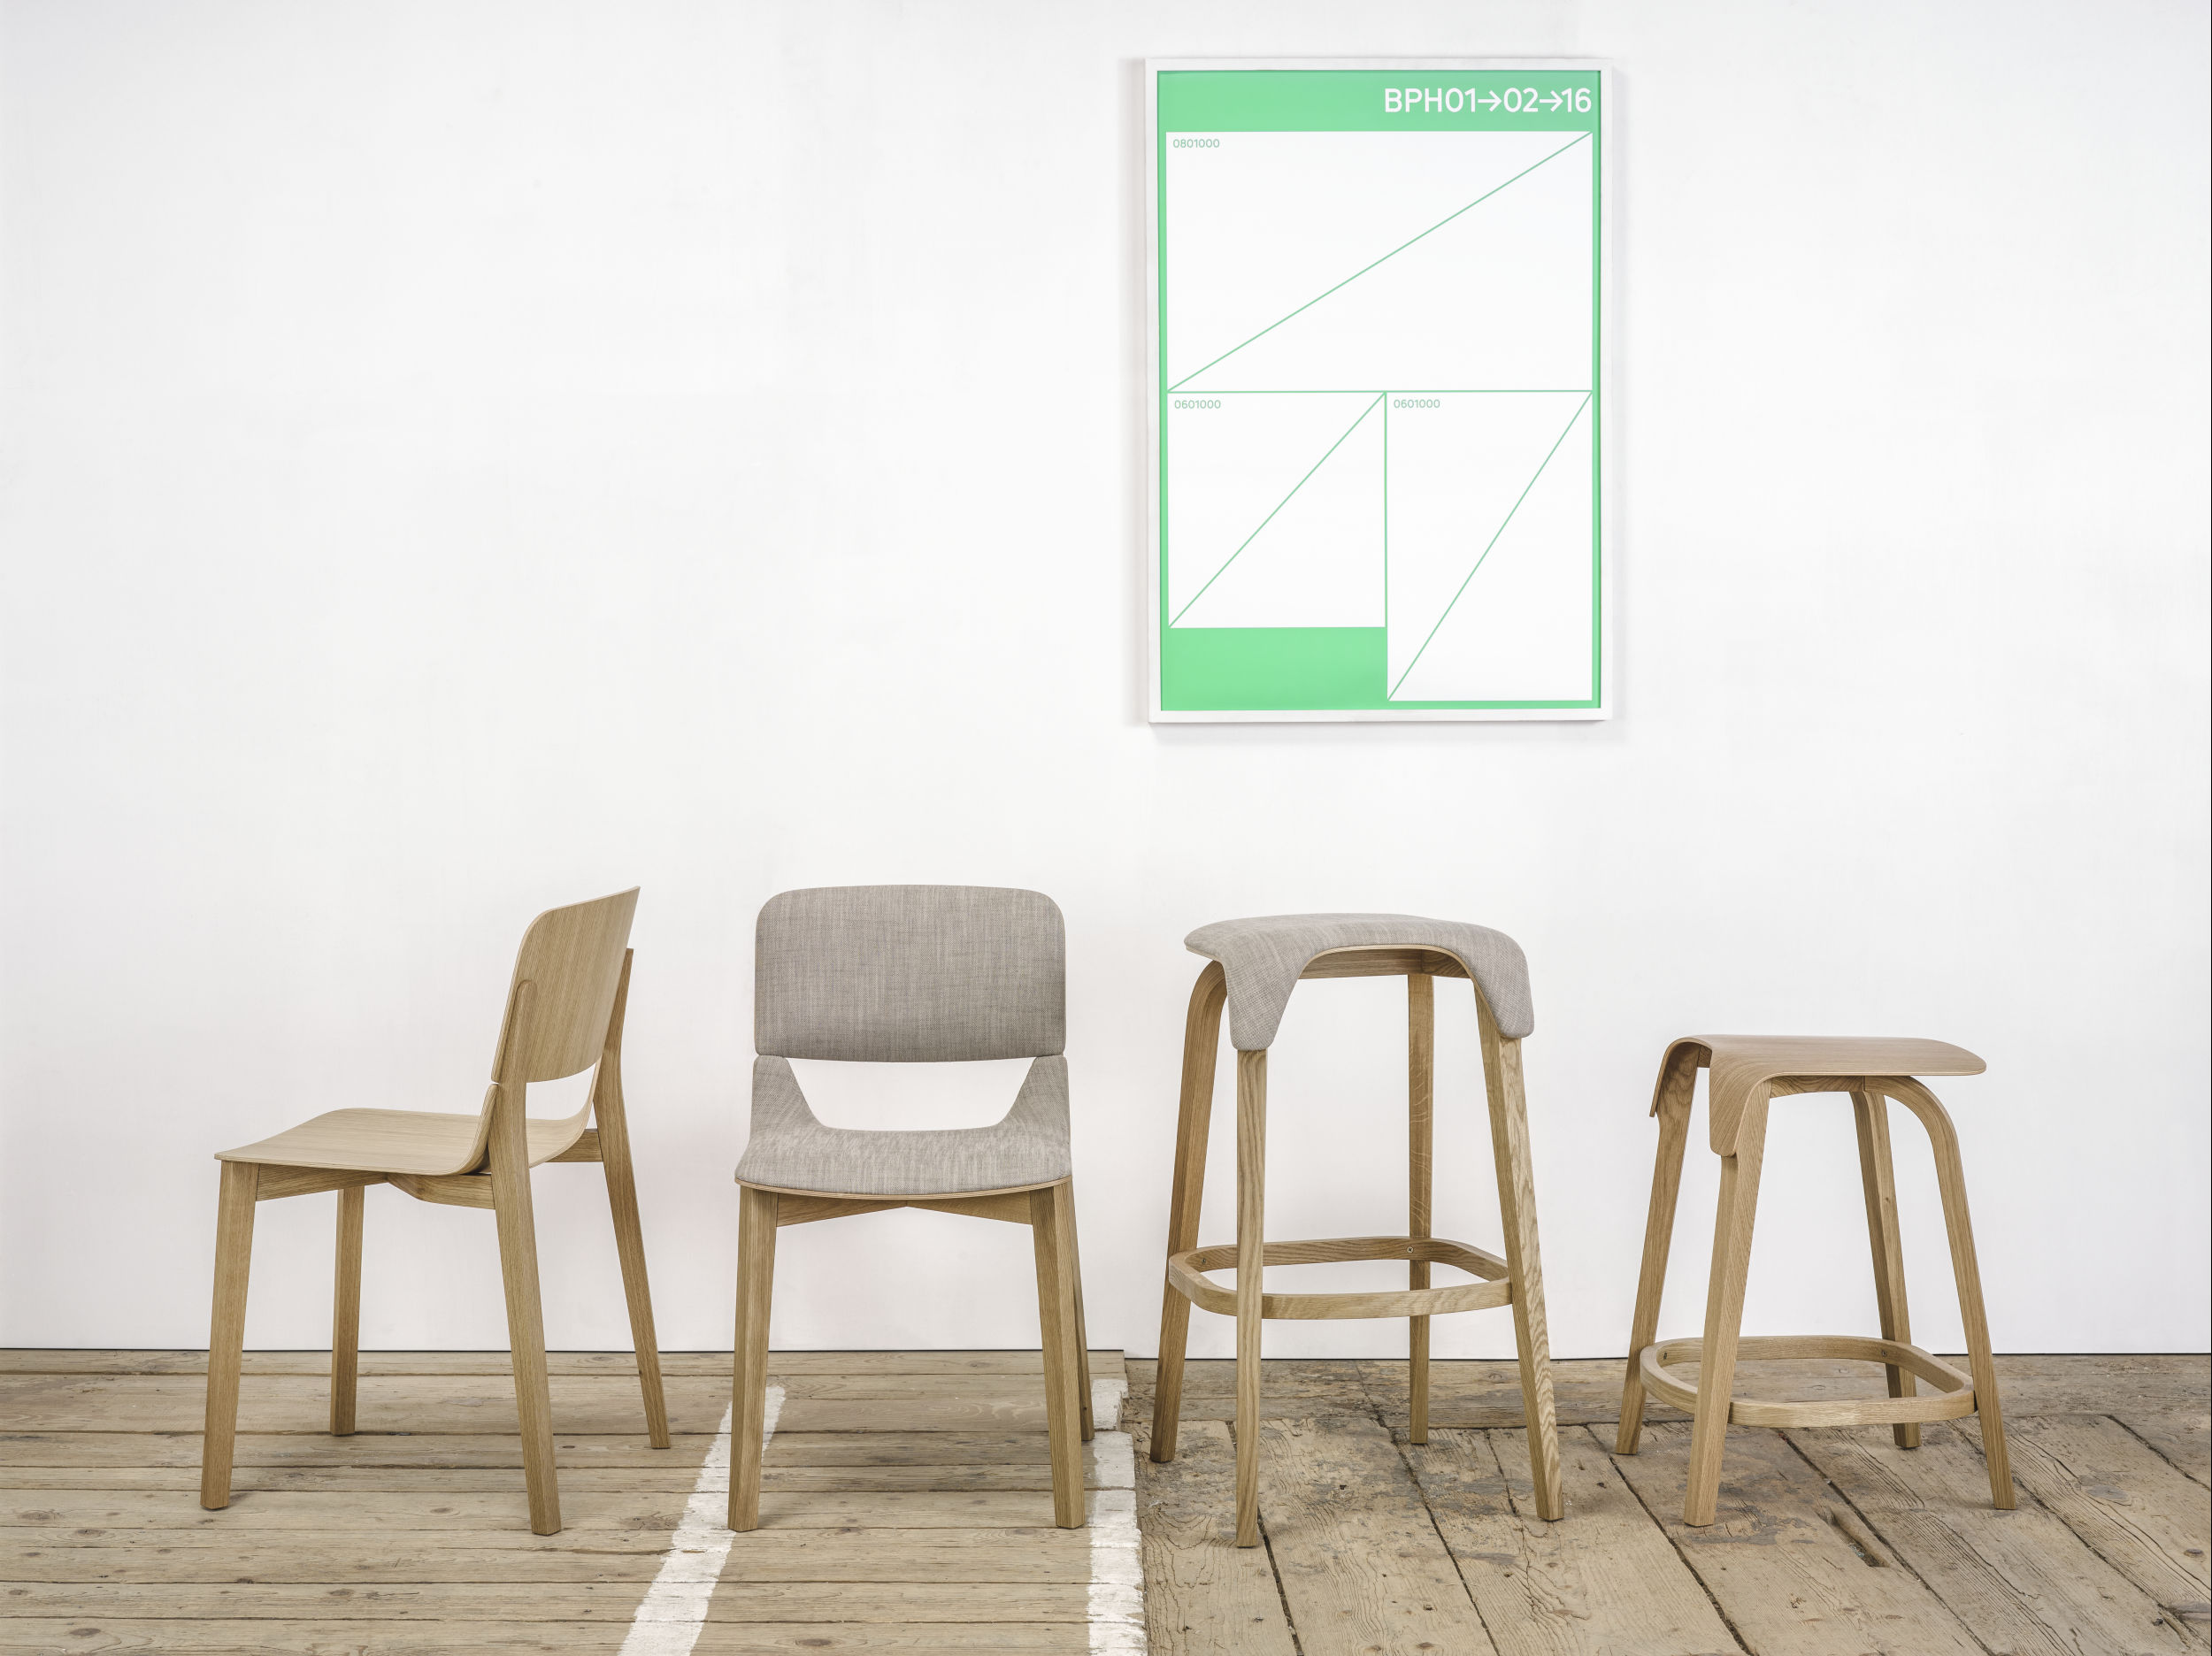 The iF Design Award 2017 goes to the Leaf Chair and Bar stool